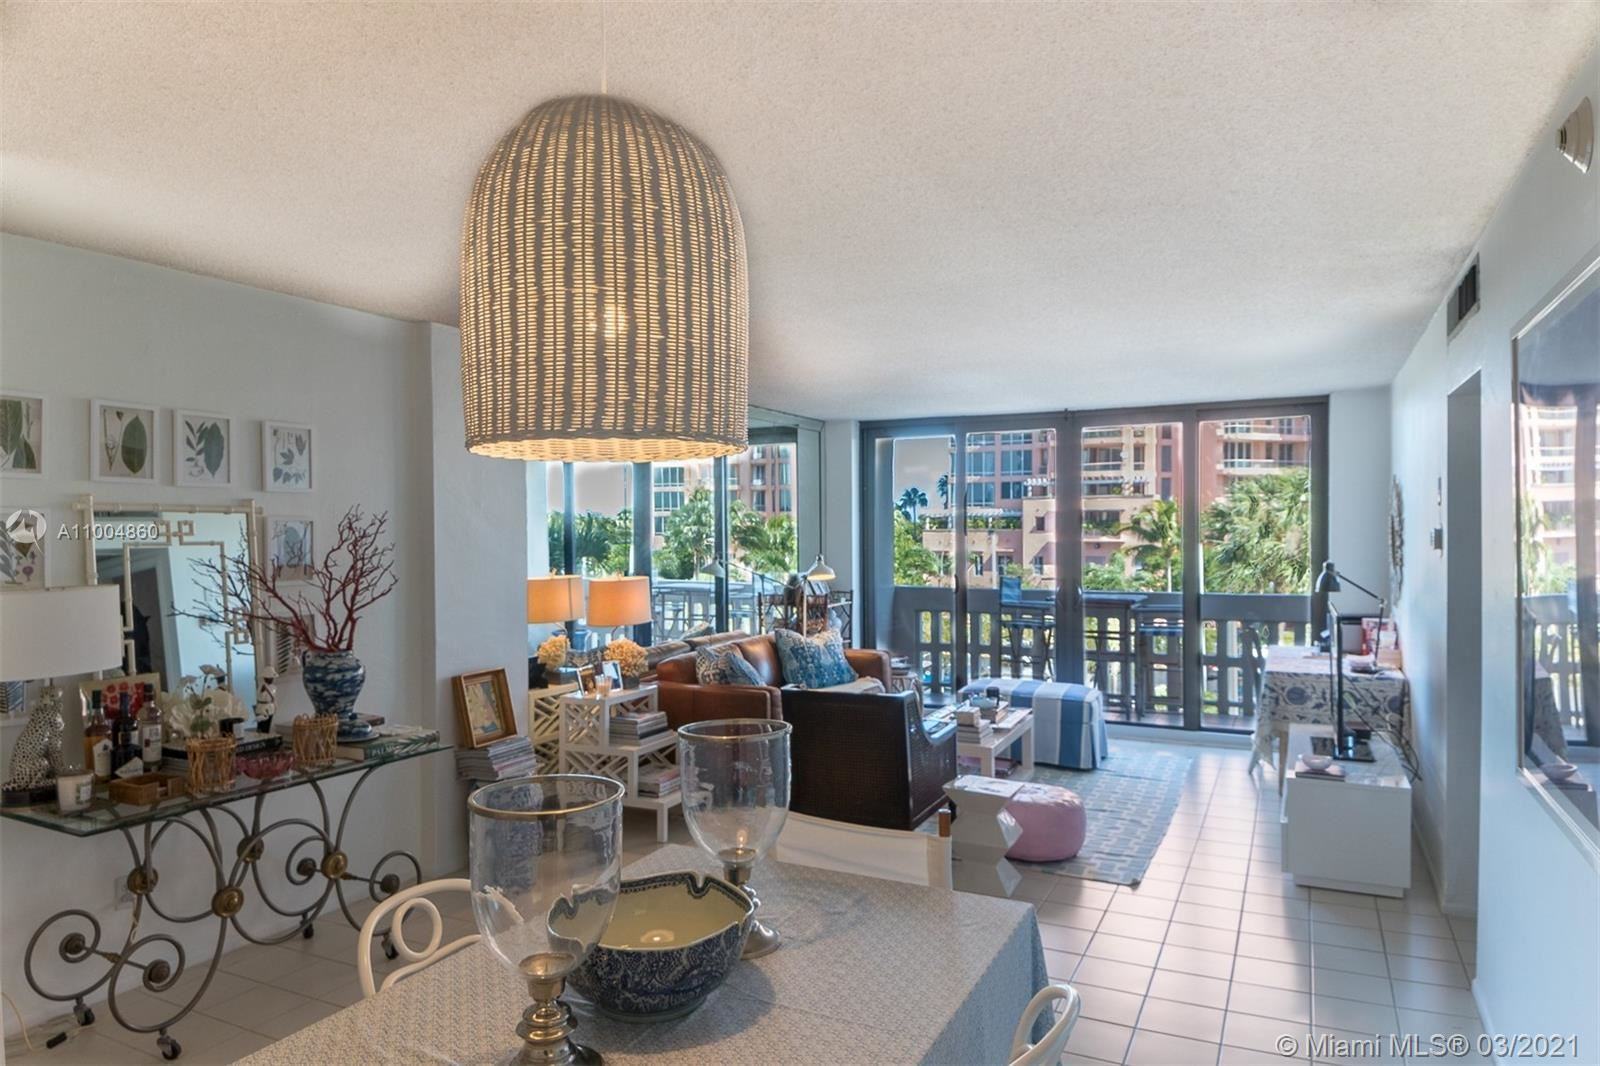 90 Edgewater Dr #312, Coral Gables, FL 33133 - #: A11004860